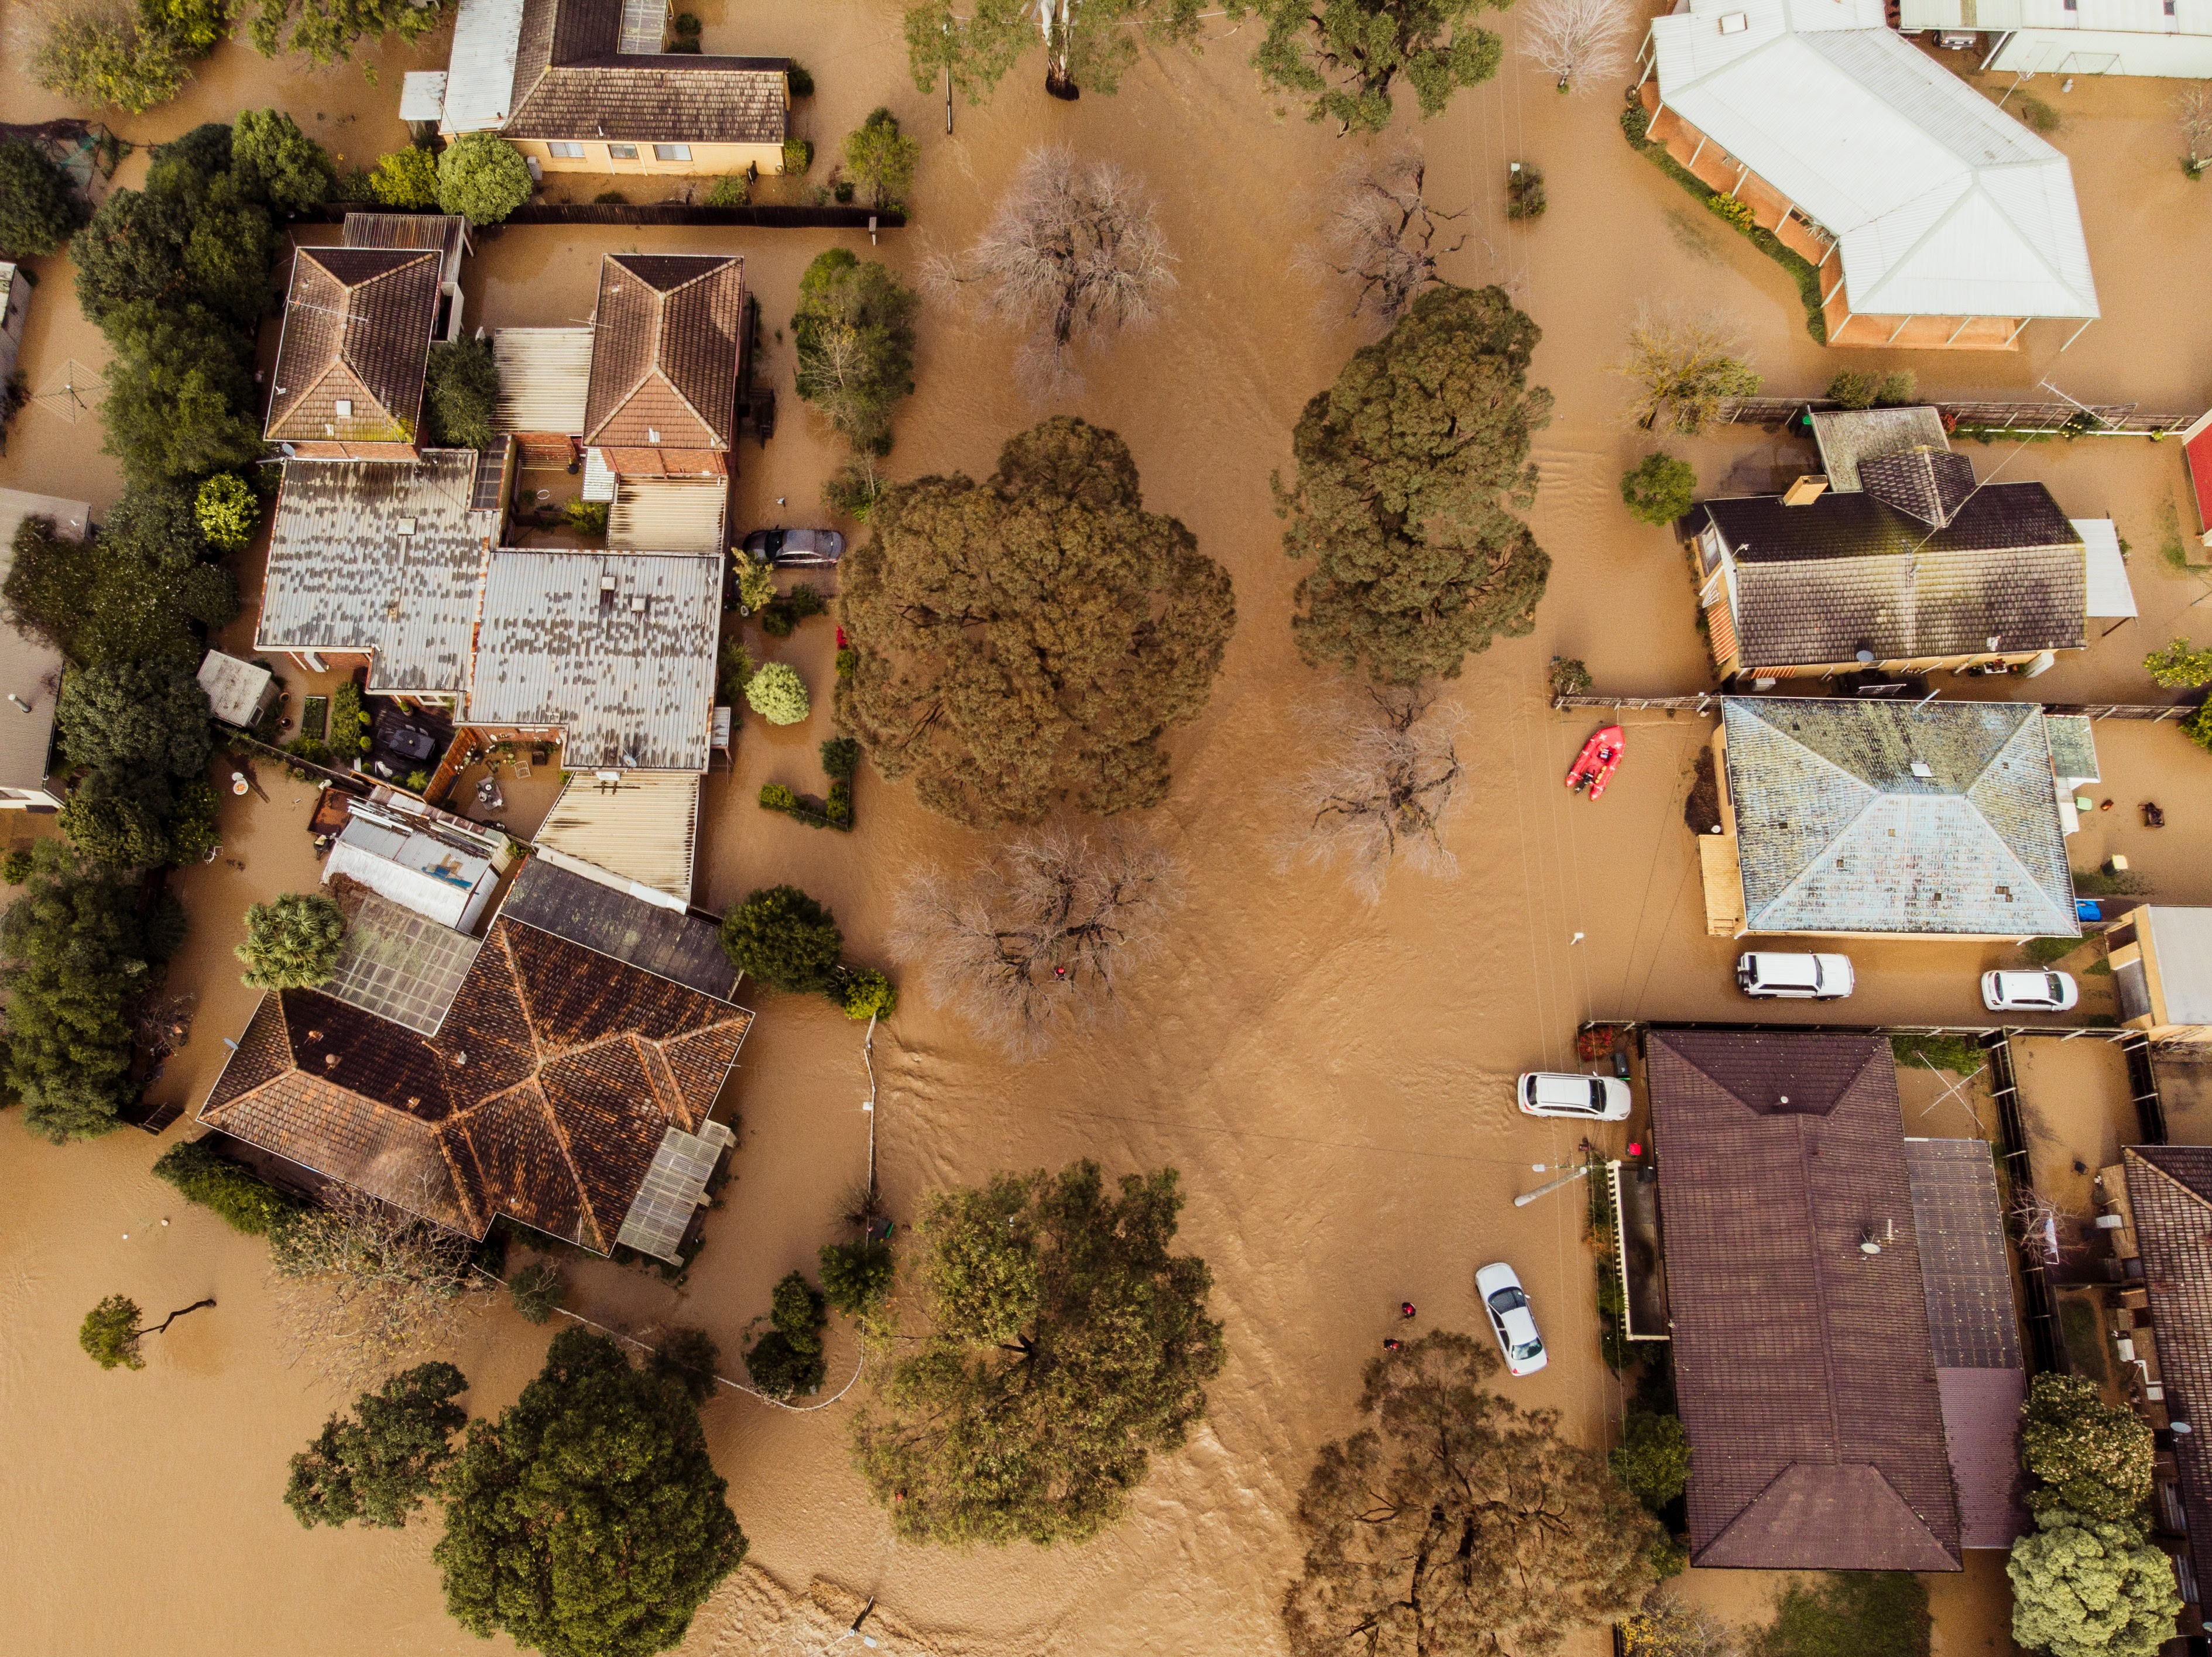 'Safe to return' to Victorian town after evacuation order lifted